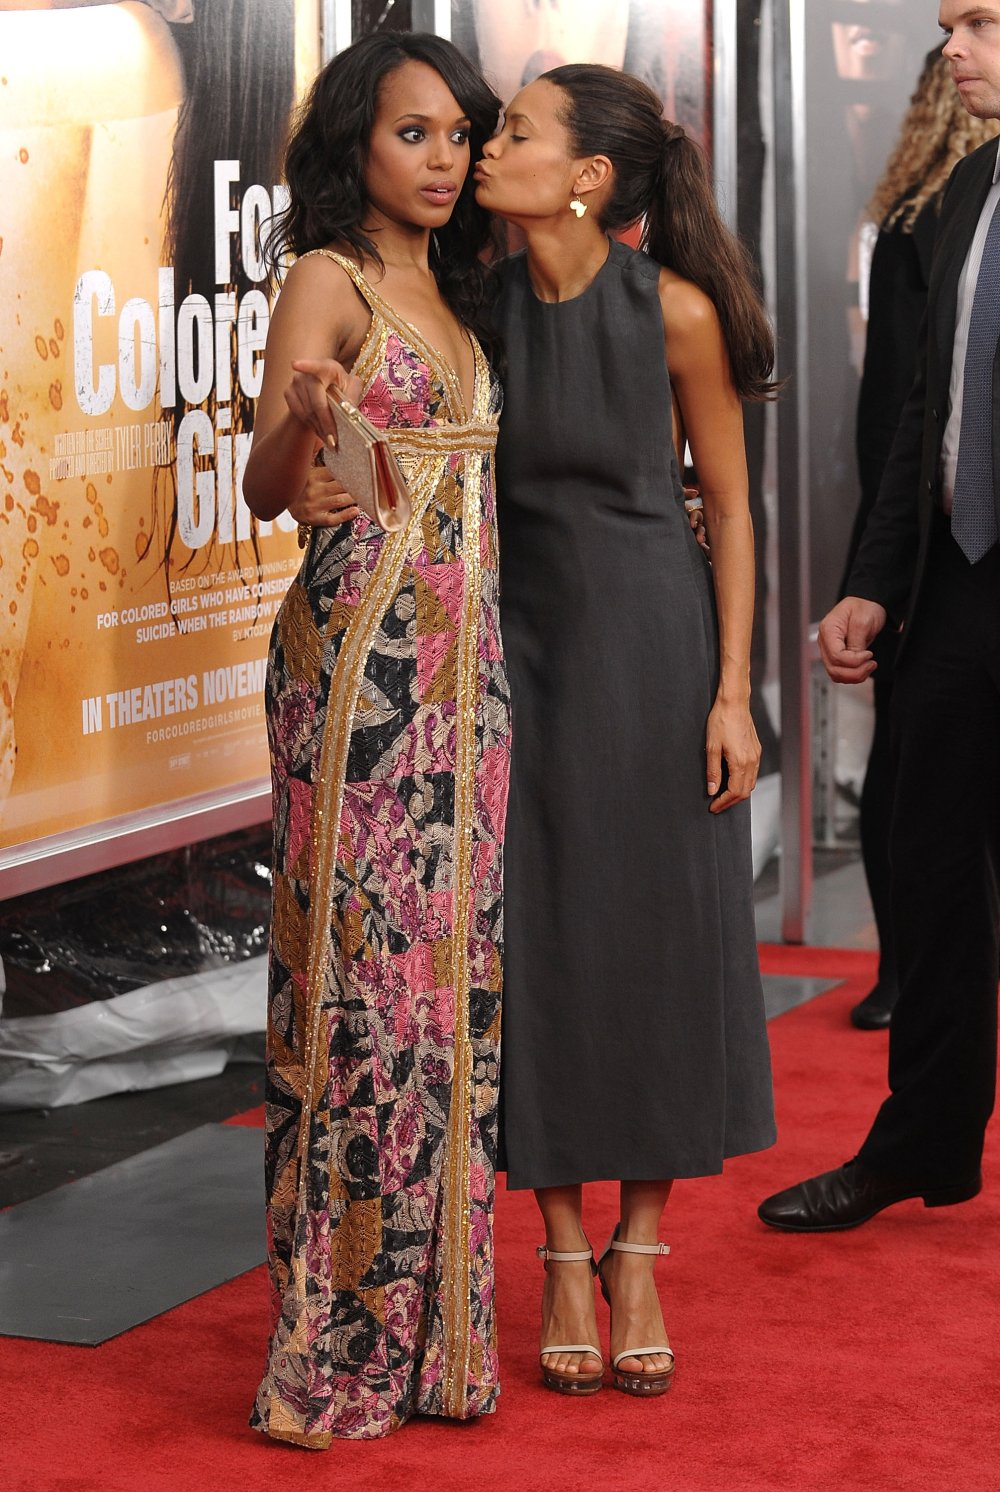 Thandie Newton Side Boob At For Colored Girls Premiere